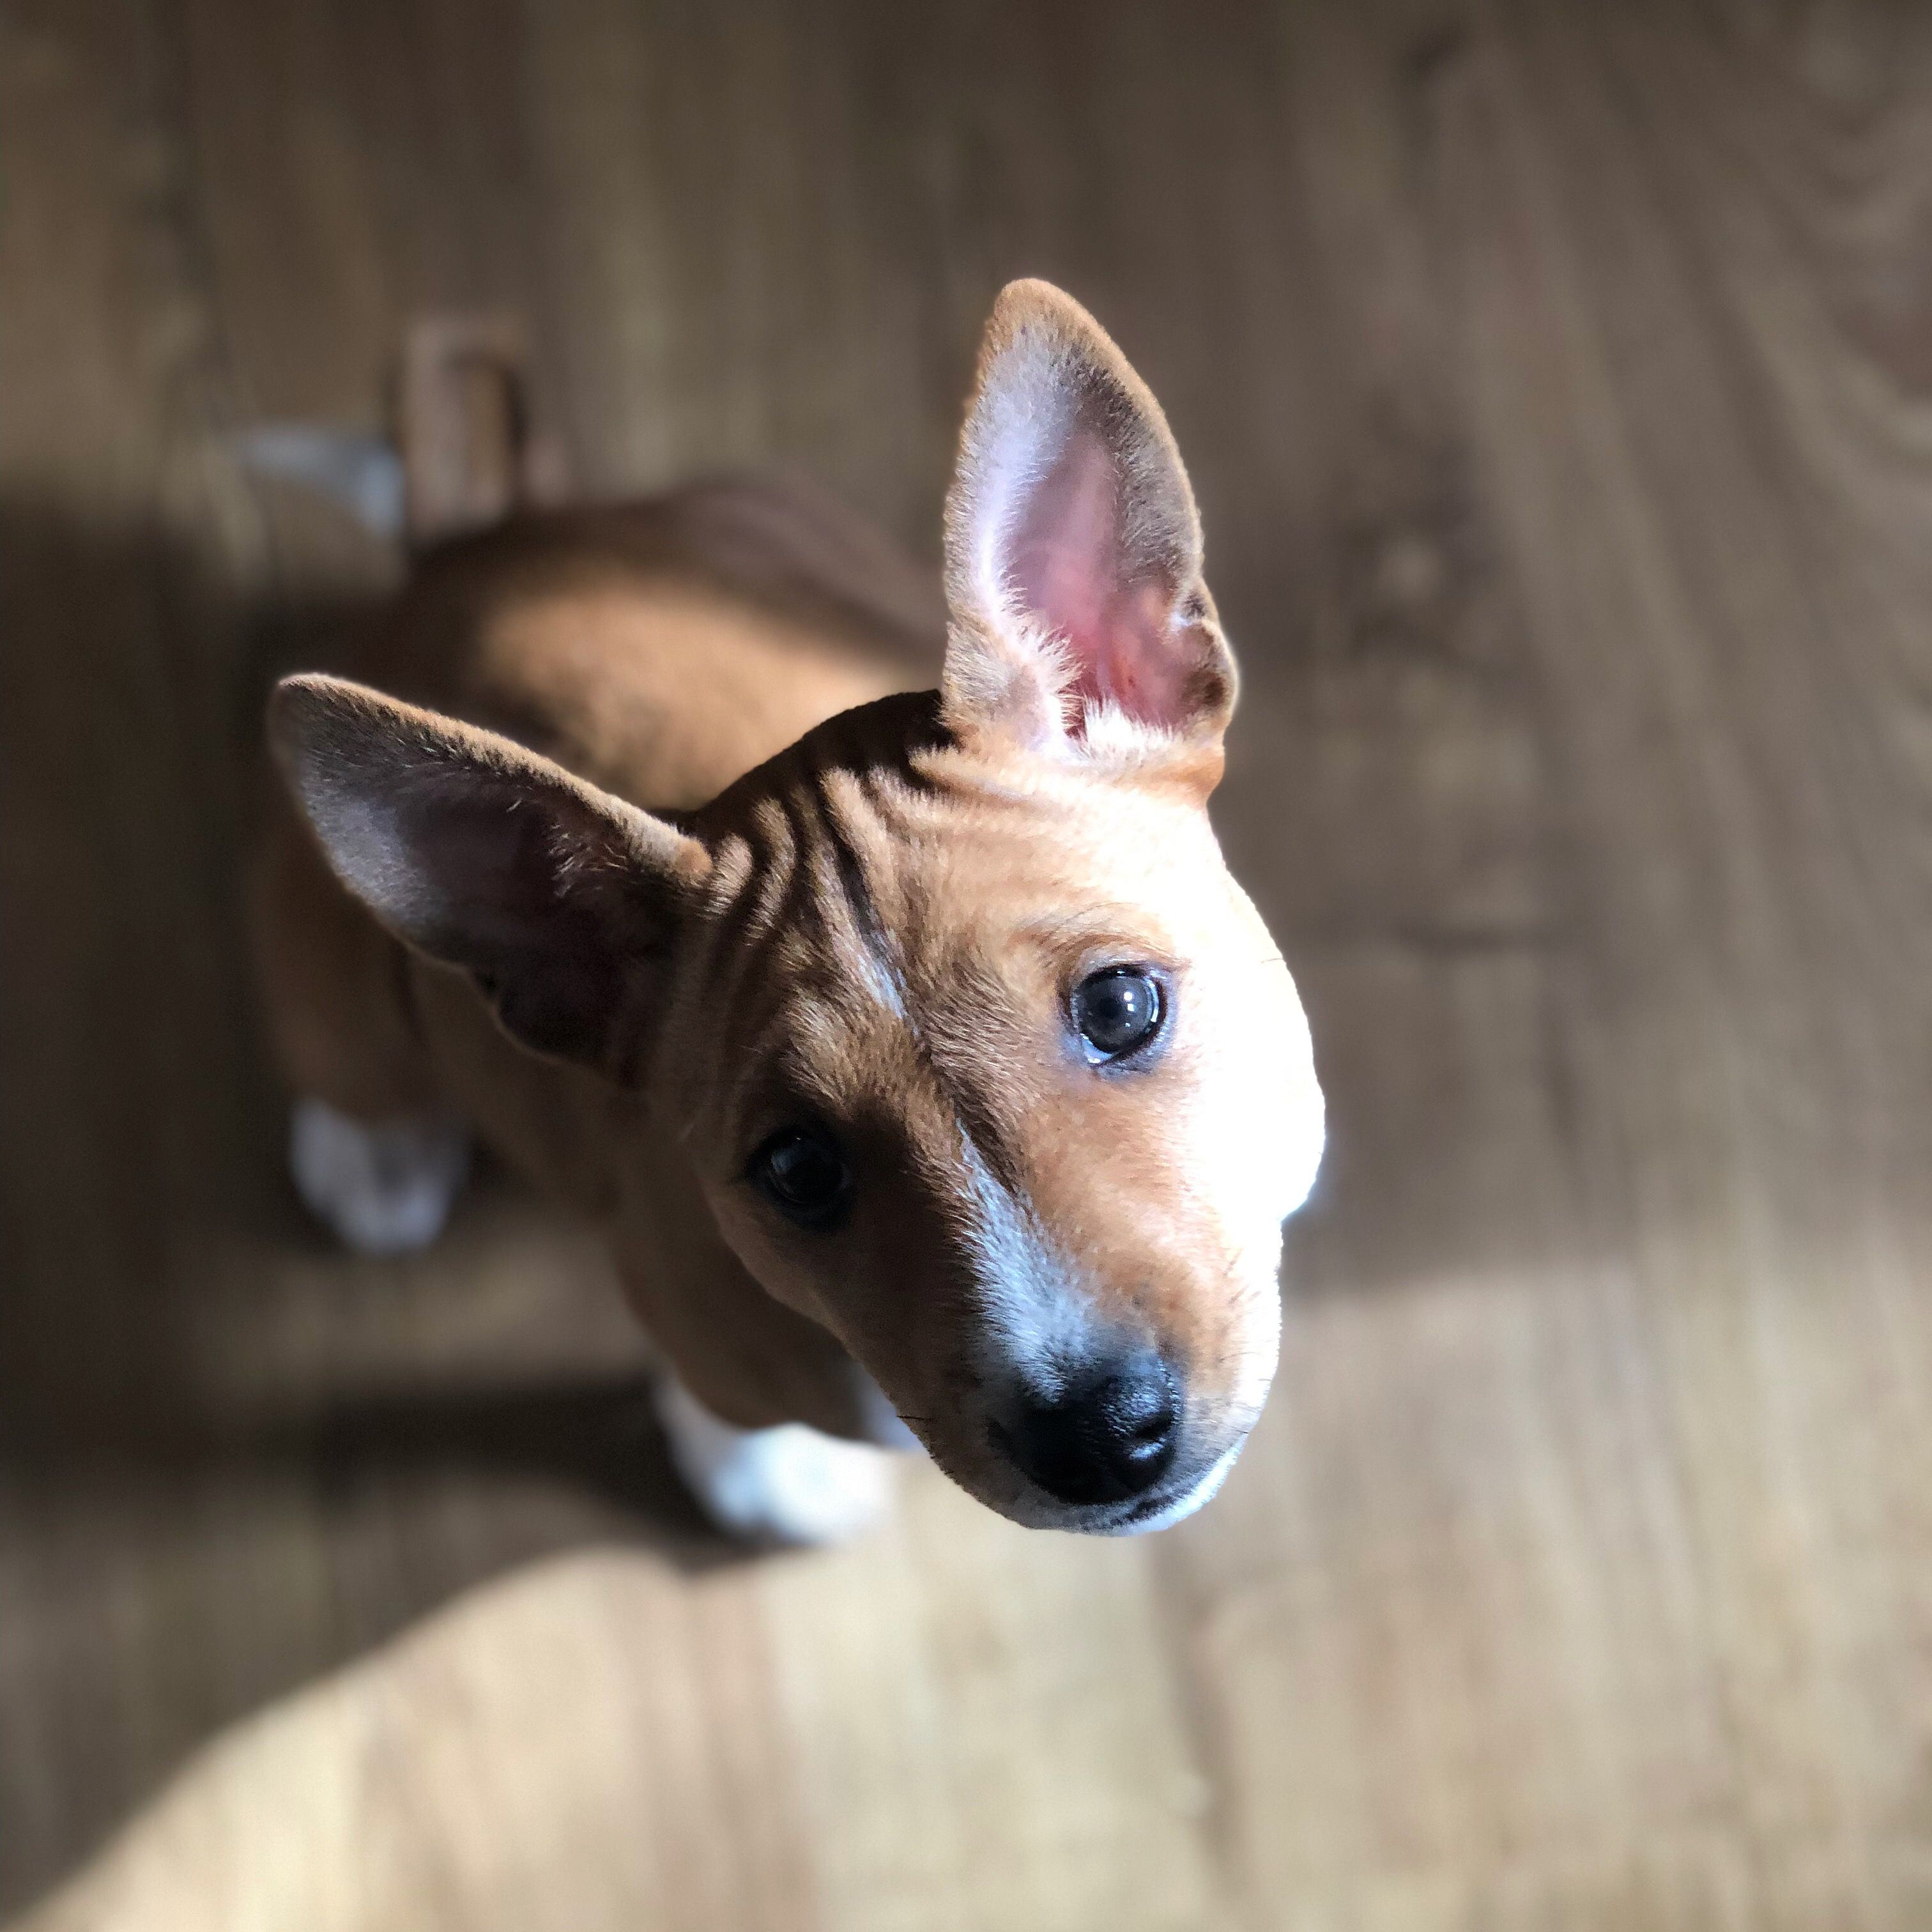 Basenji S Have A Very Distinct Look Giant Ears Wrinkly Foreheads And Puppy Dog Eyes But Don T Be Fooled By T Basenji Puppy Puppy Dog Eyes Dogs And Puppies